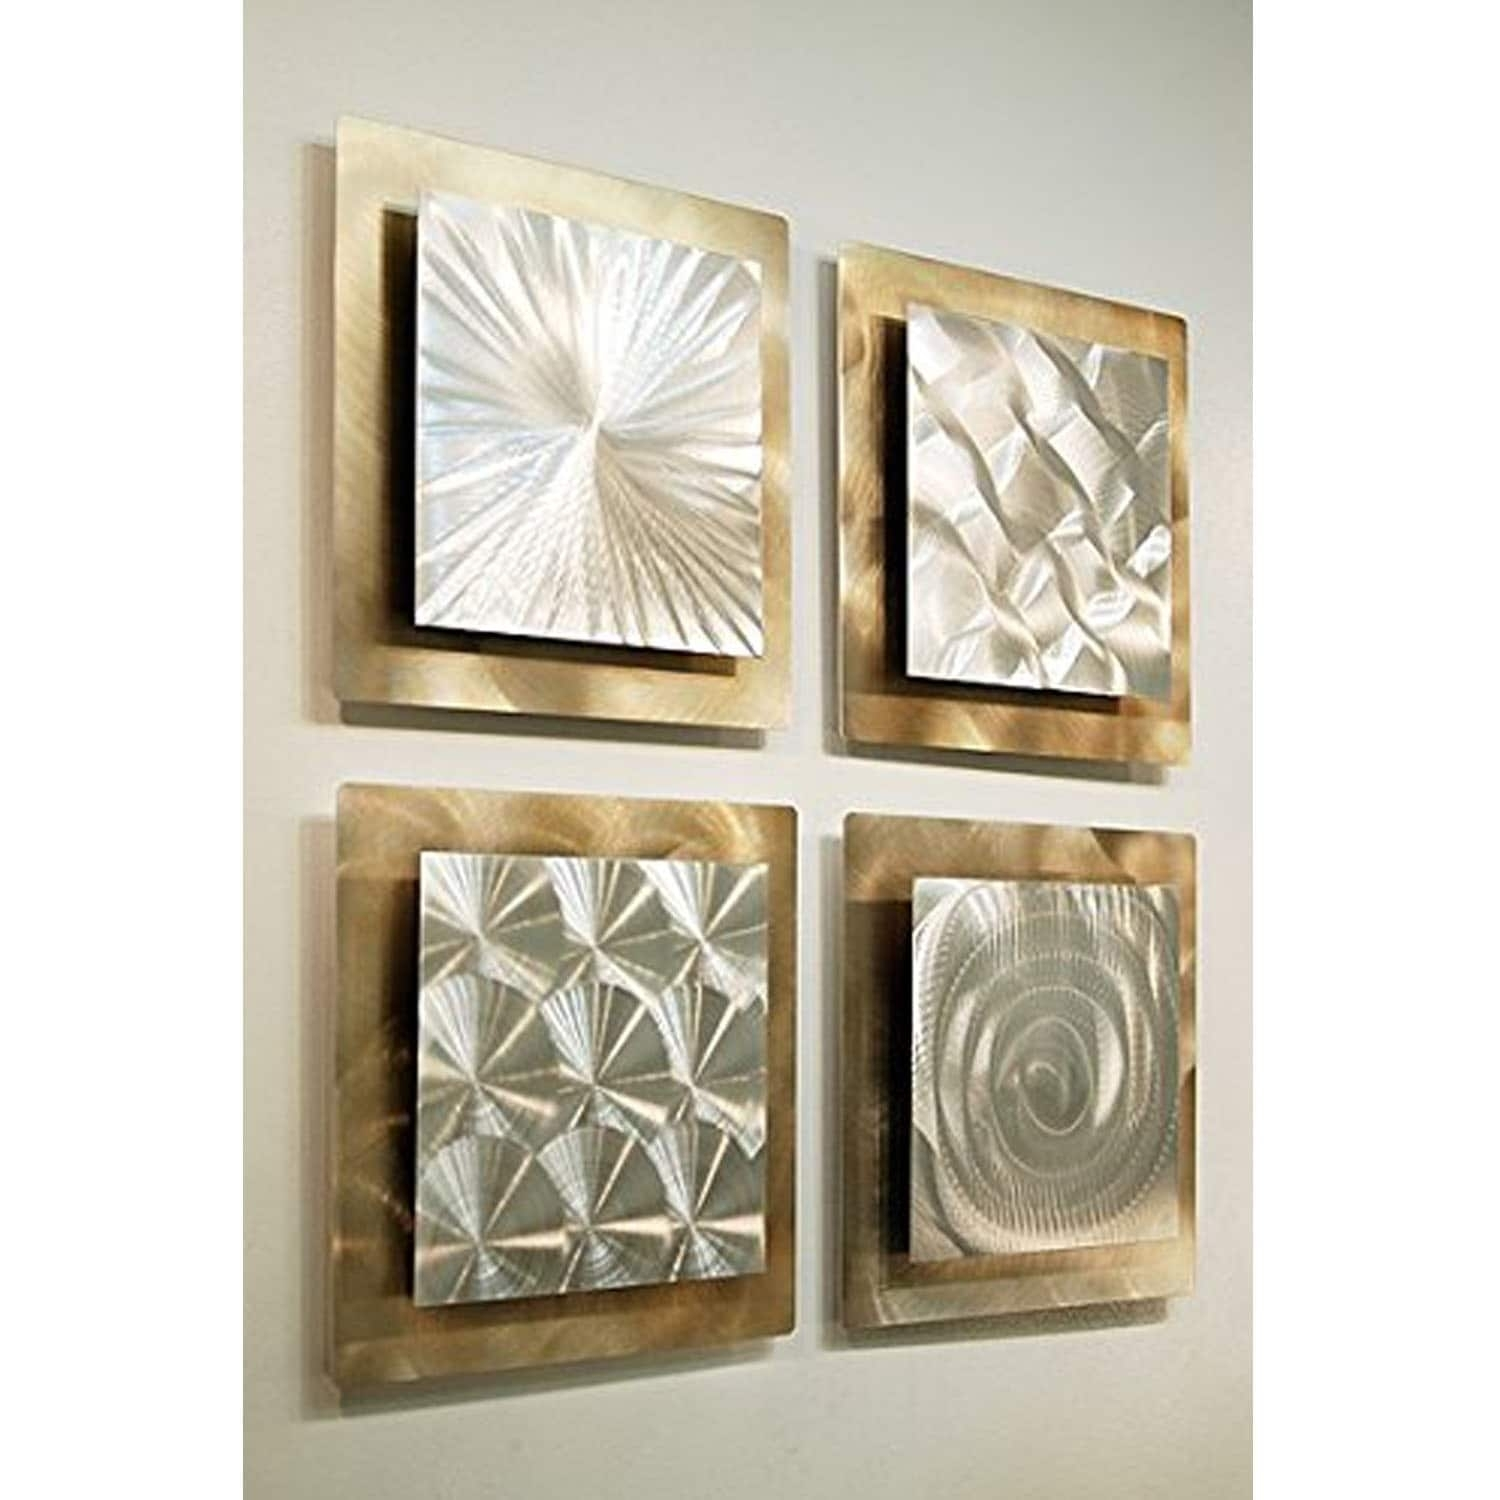 Statements2000 Set Of 4 Gold / Silver Metal Wall Art Accentjon Pertaining To Most Up To Date Metal Wall Accents (Gallery 1 of 15)